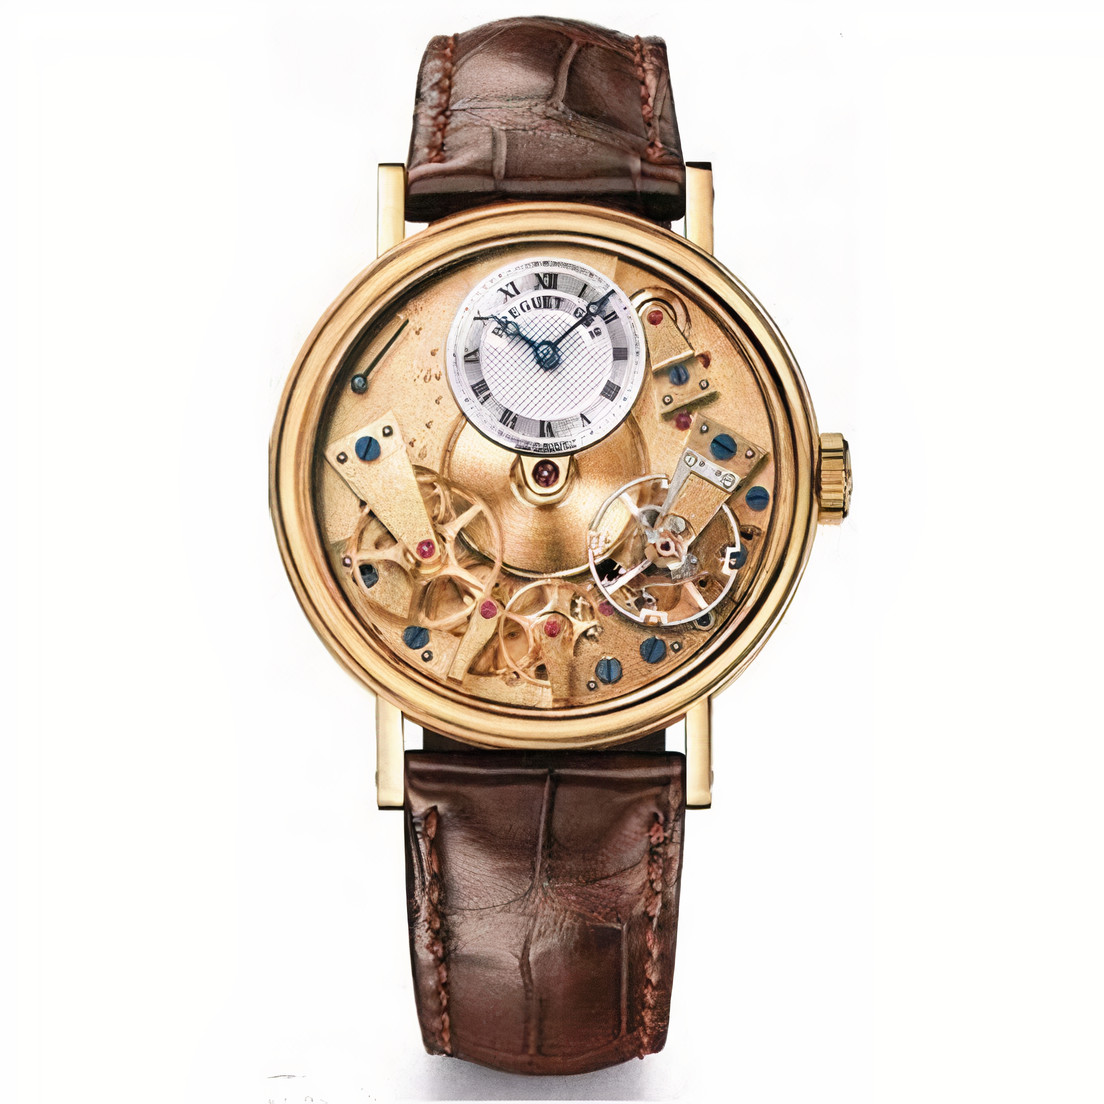 The world's most expensive brand watch